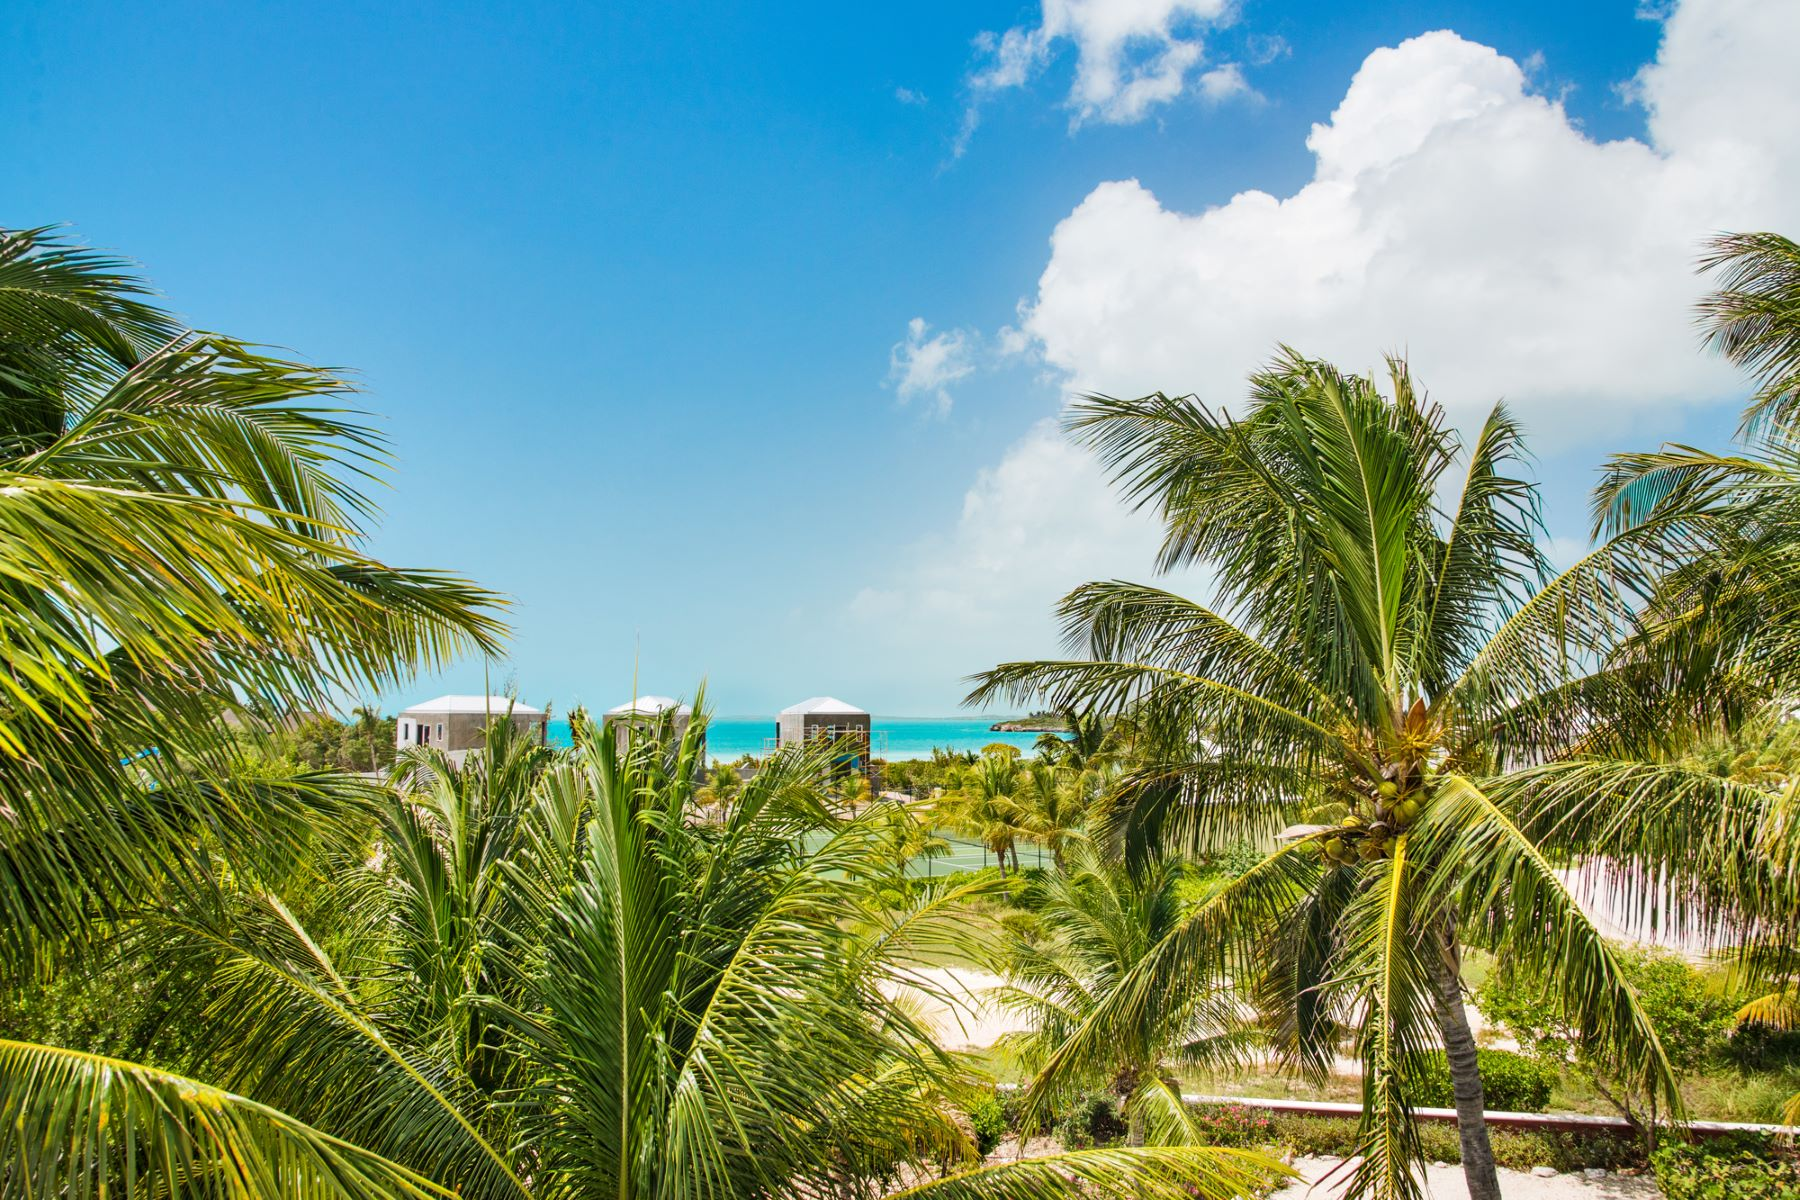 Additional photo for property listing at Etoile De Mer Taylor Bay, Providenciales Turks And Caicos Islands